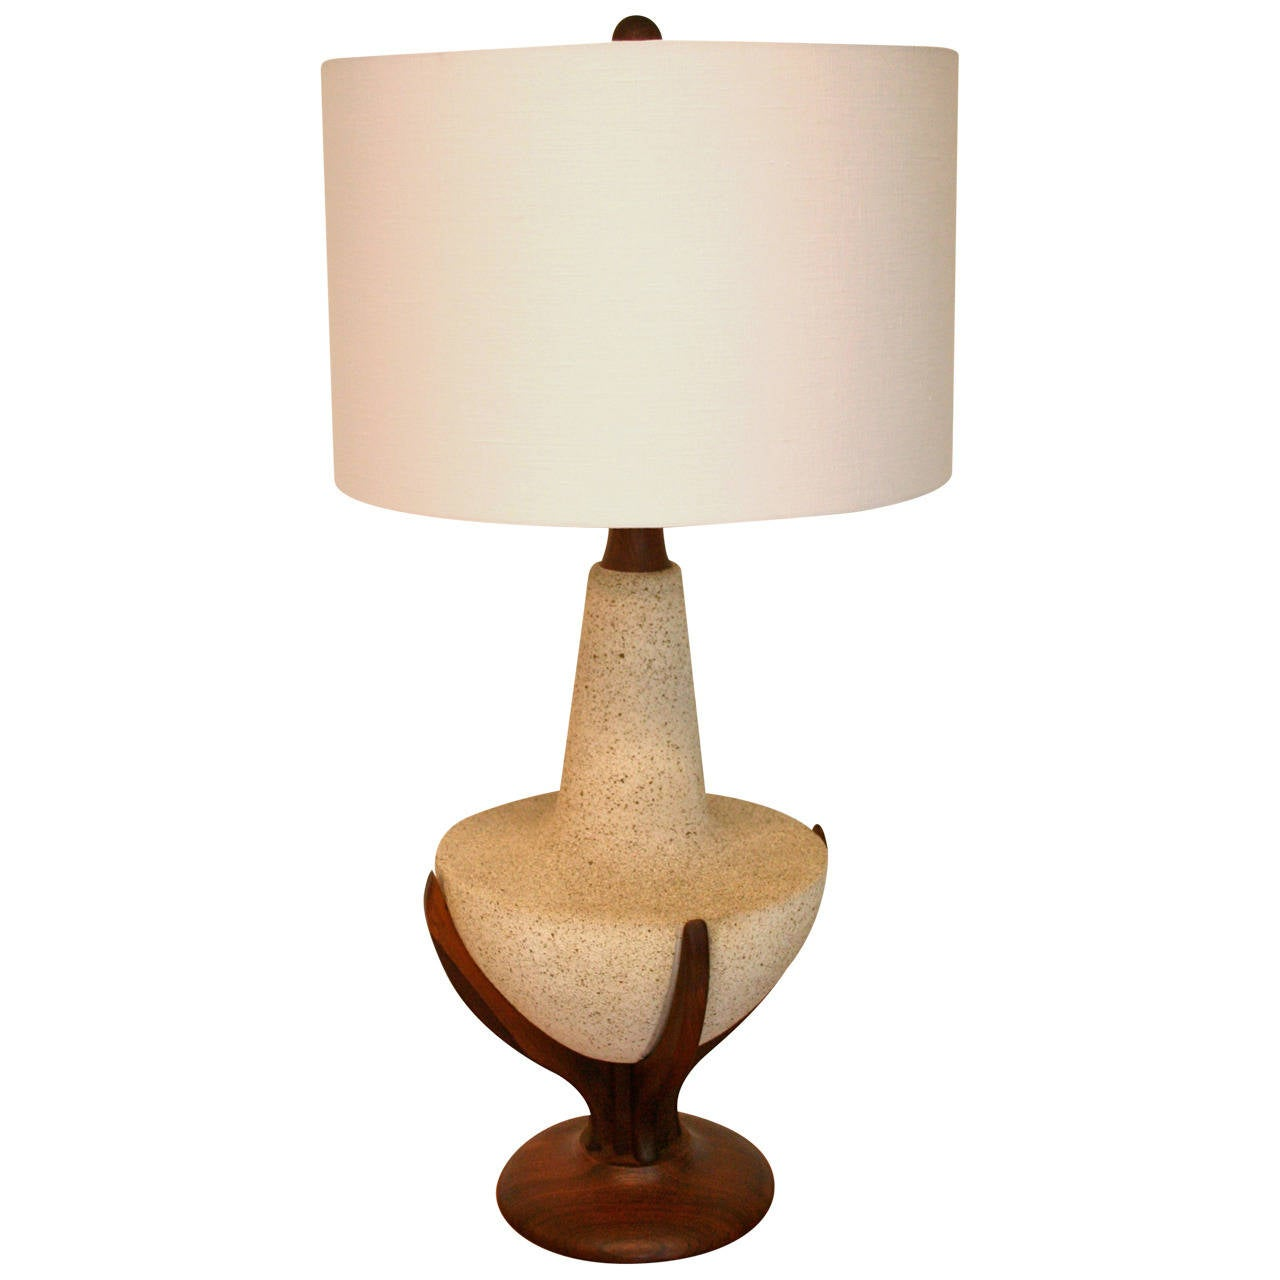 mid century modern table lamp at 1stdibs. Black Bedroom Furniture Sets. Home Design Ideas